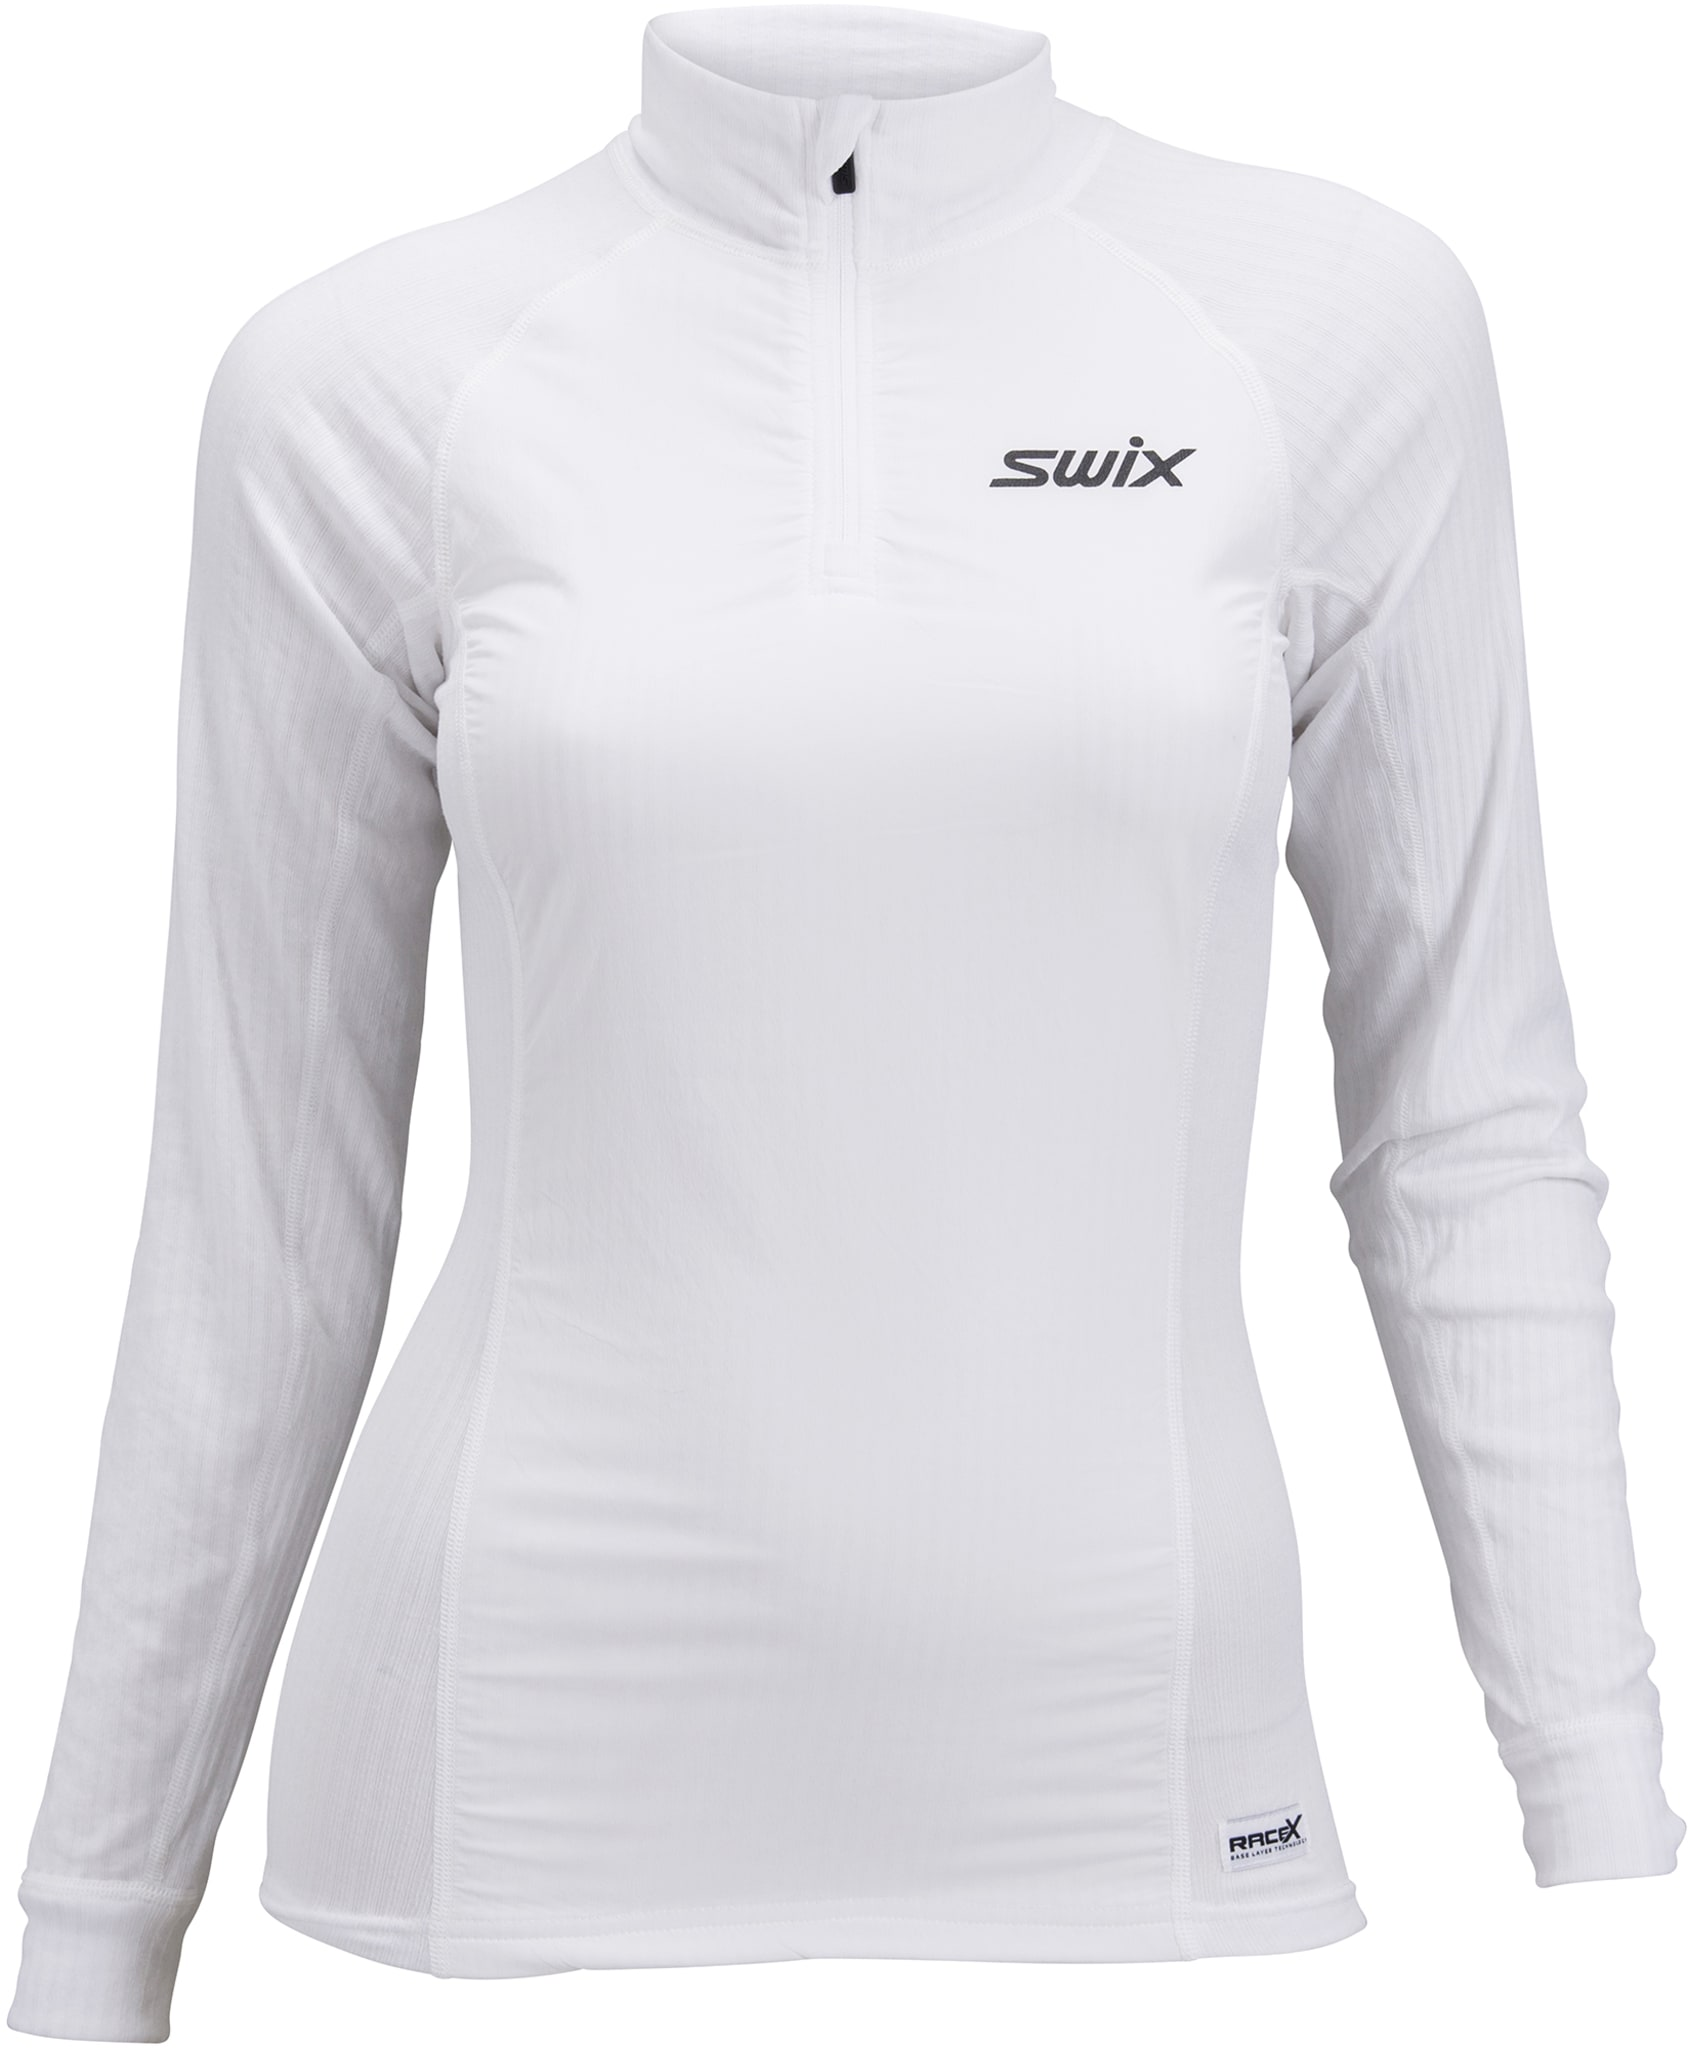 RaceX bodyw halfzip wind Women